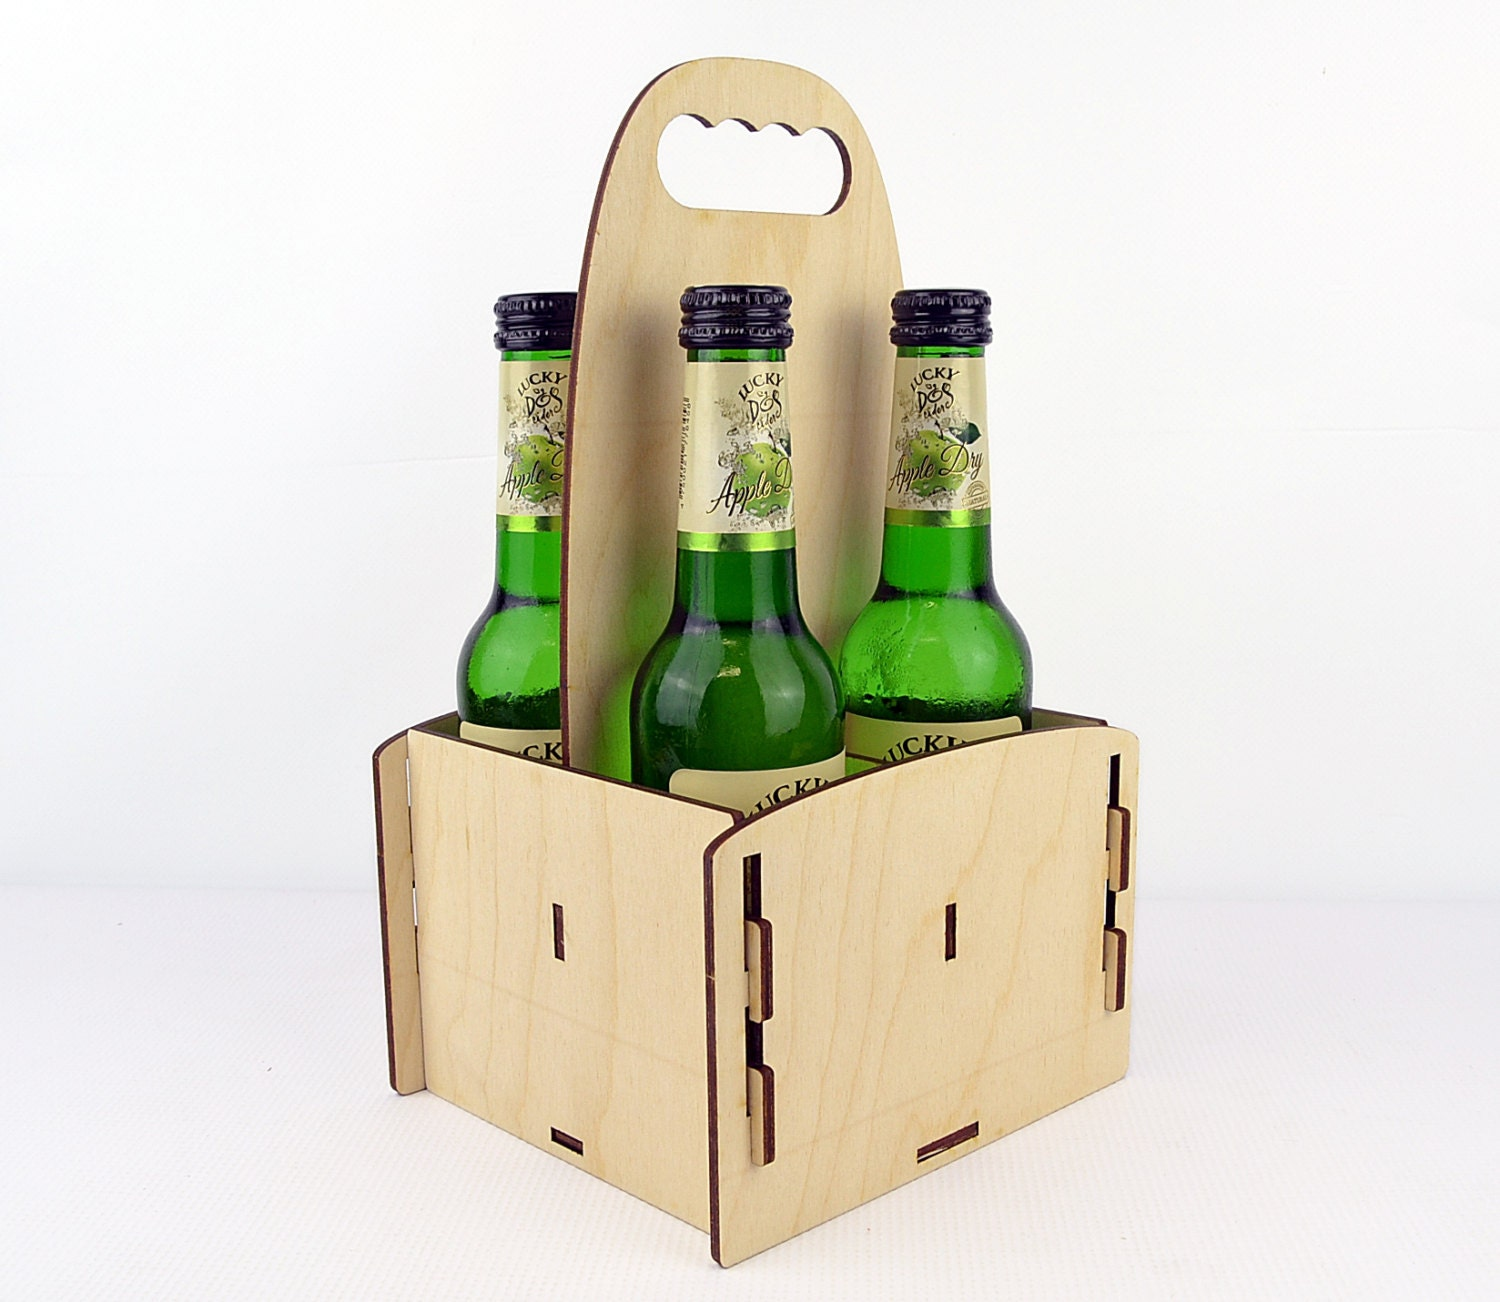 Wooden Packing Crates Wooden Beer Box / Diy 4 Pack